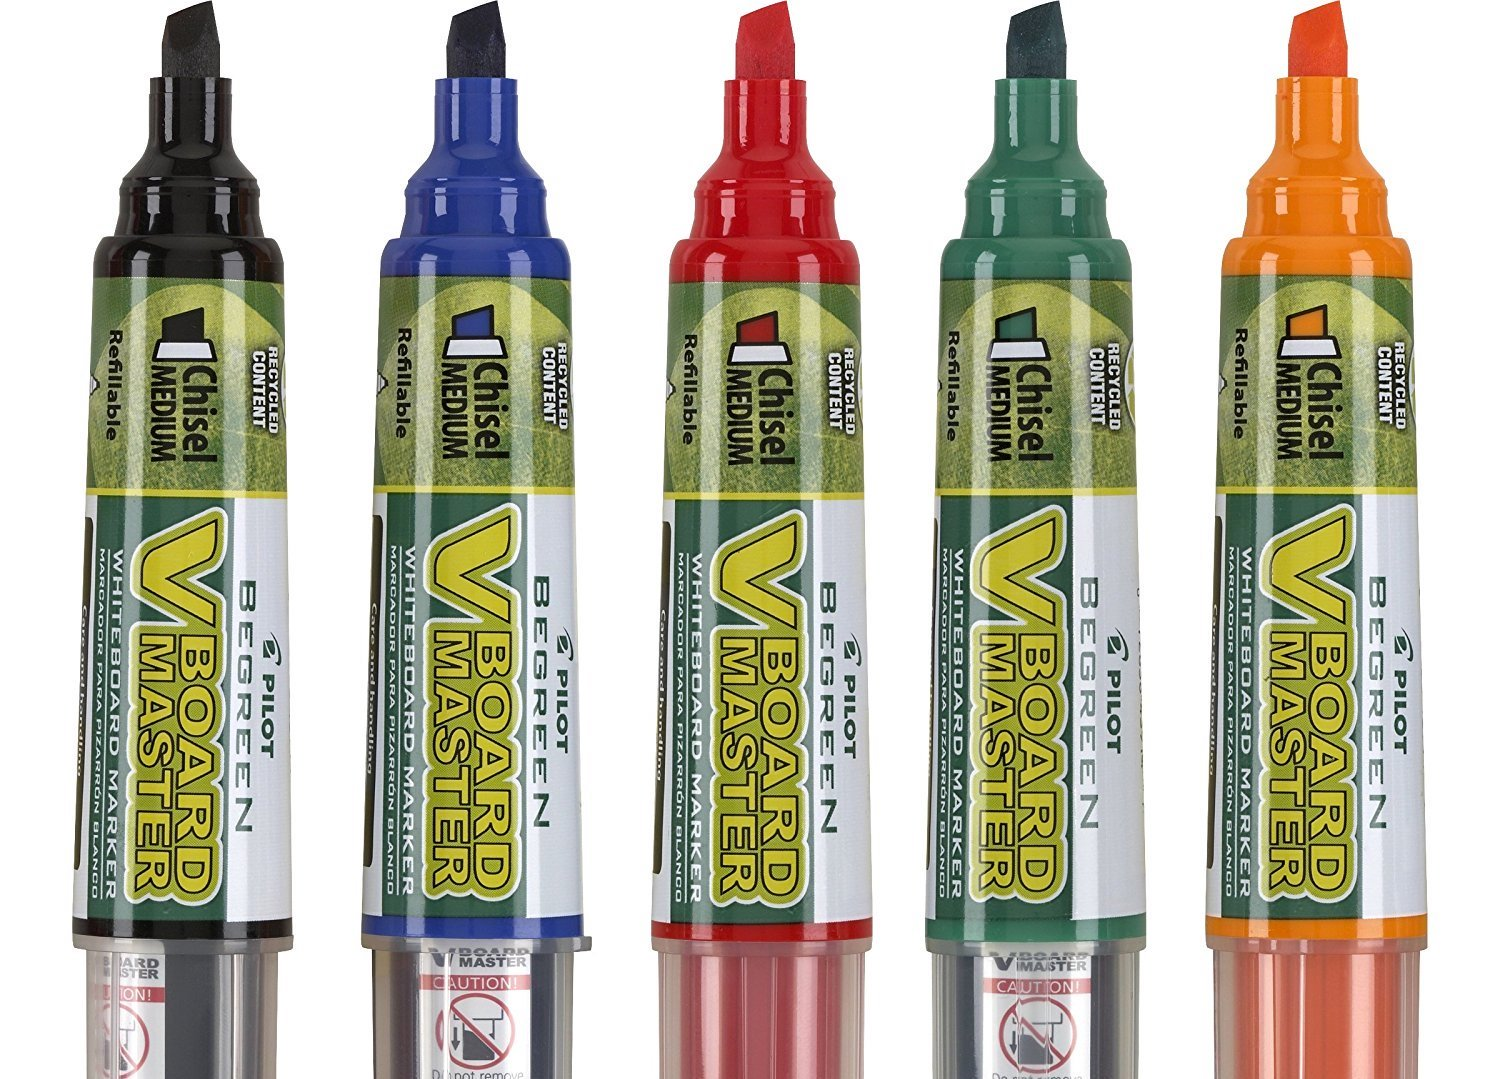 Whiteboard Markers Design Thinking Tools.jpg